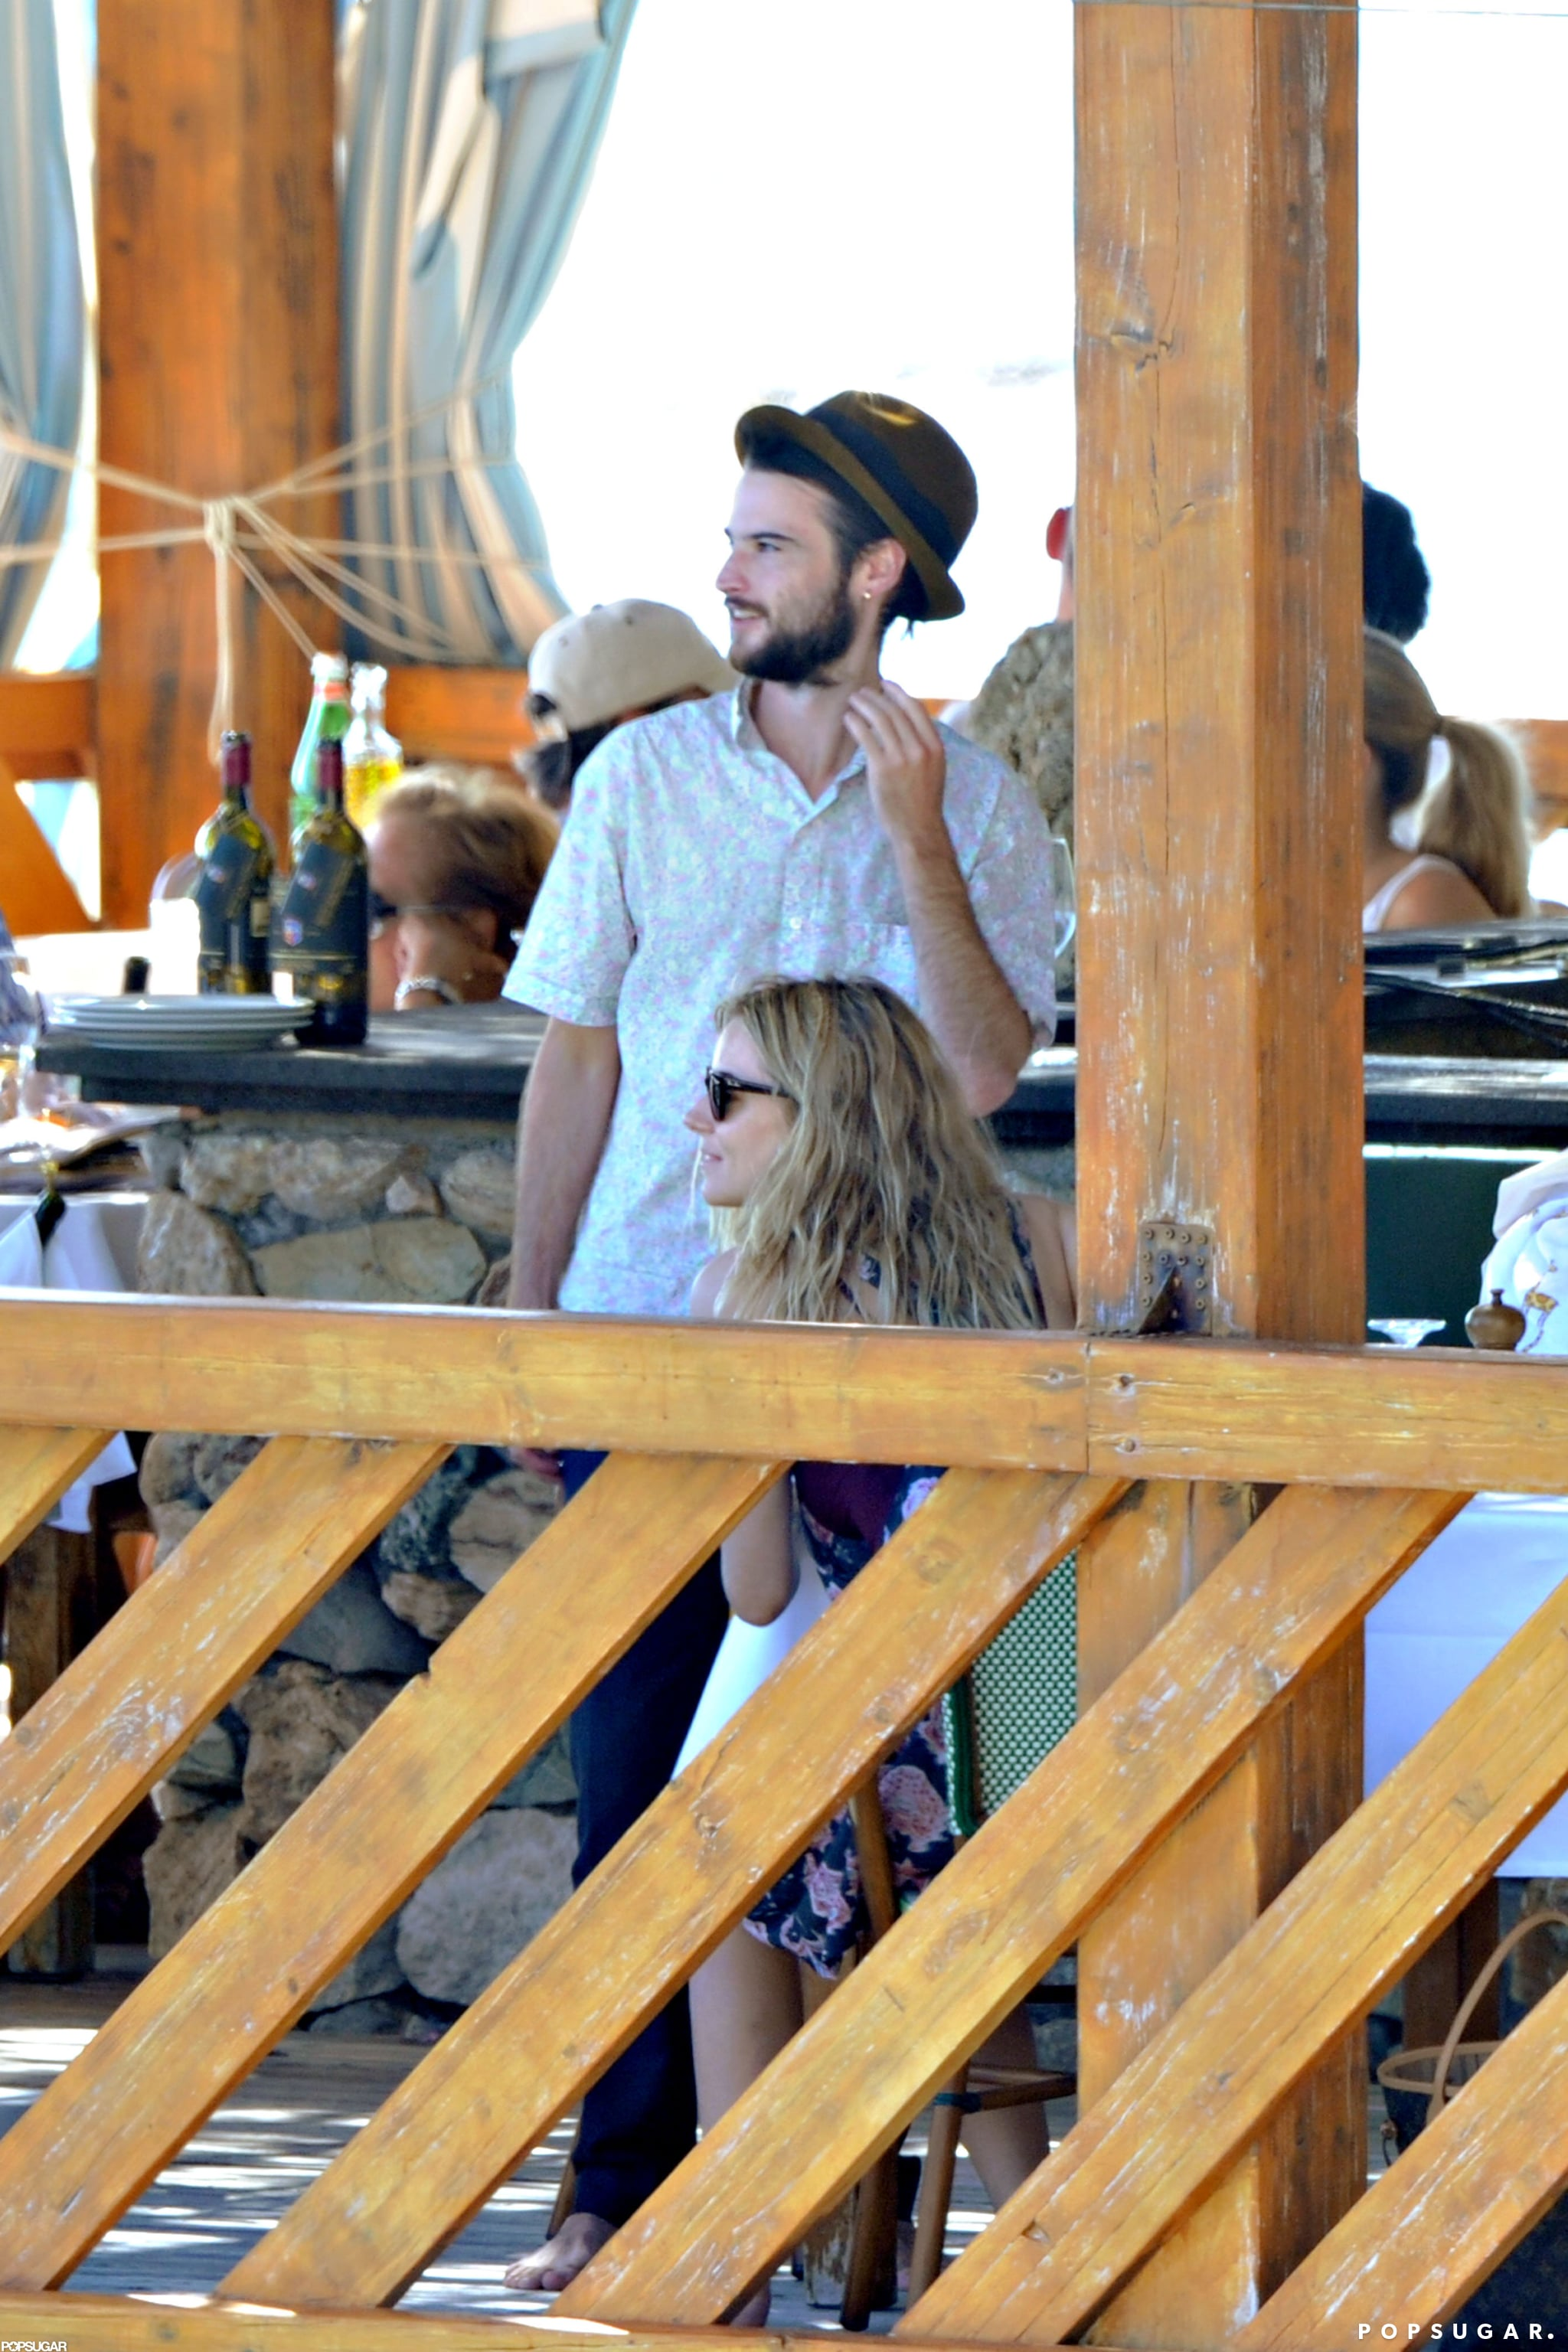 Tom Sturridge and Sienna Miller boarded a boat in Positano.